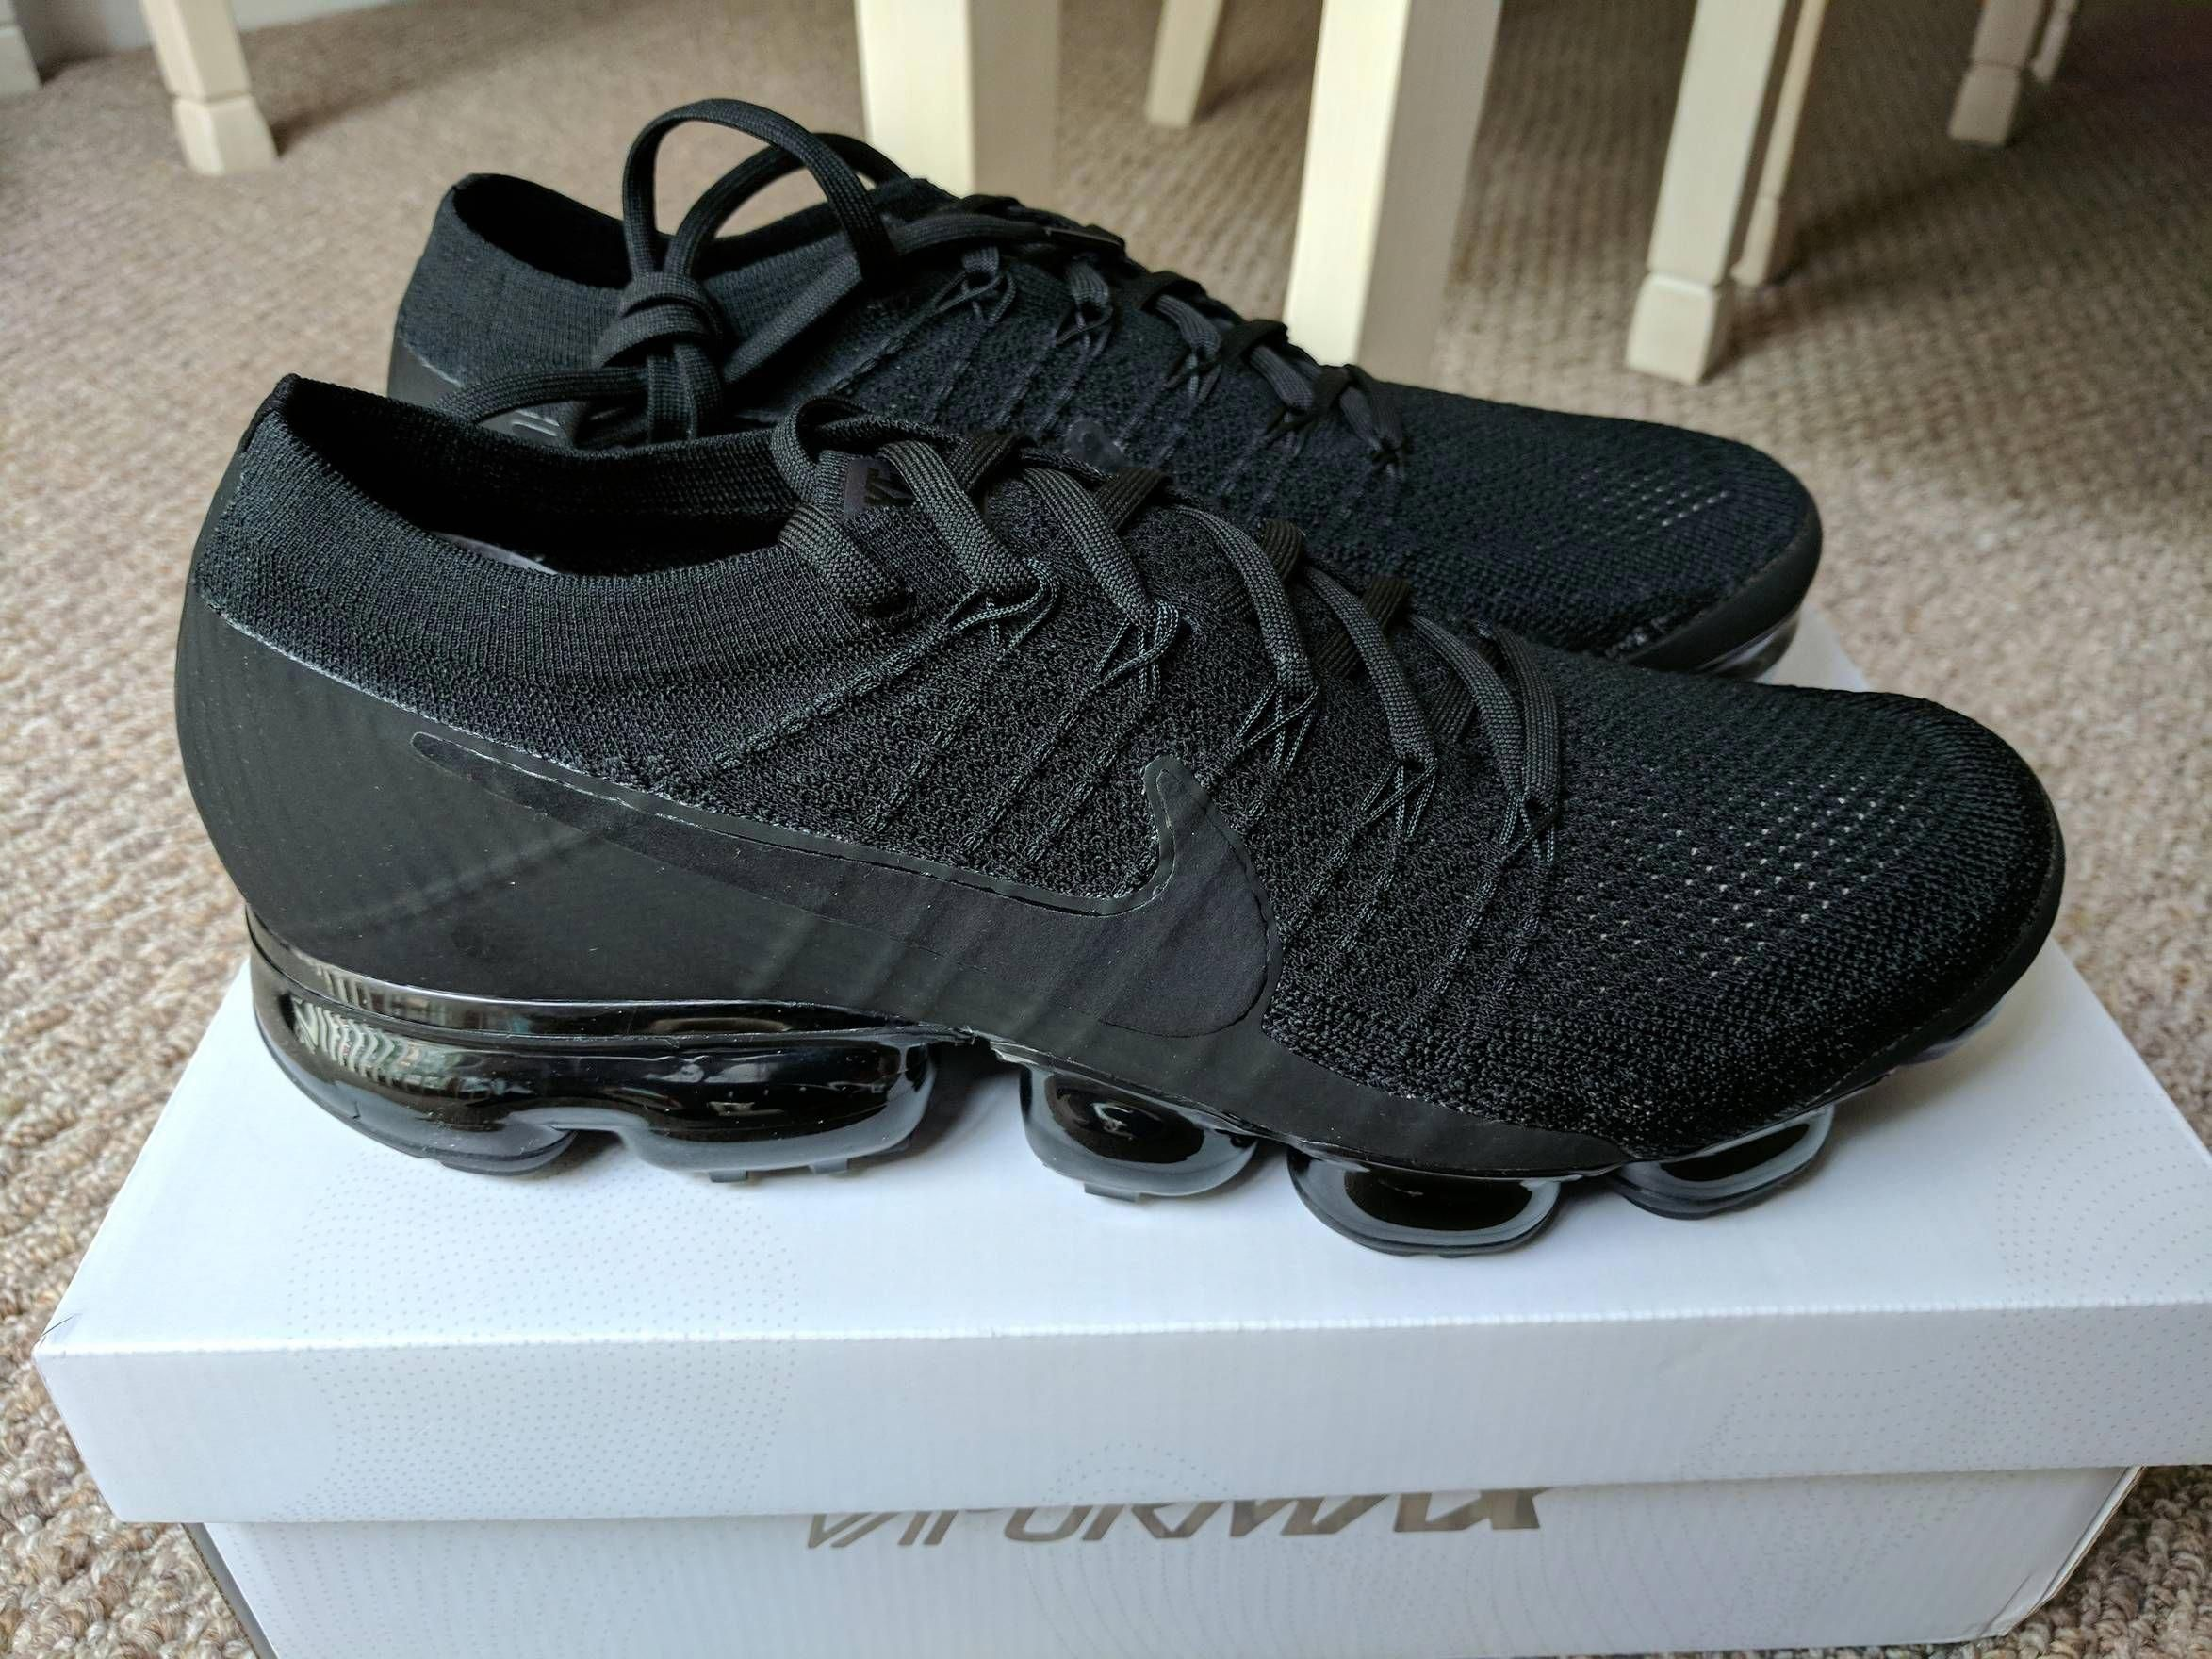 newest 005fe fbc57 Nike Nike Air VaporMax Triple Black 3.0 Size US 11   EU 44 - 1   MensFashionSneakers